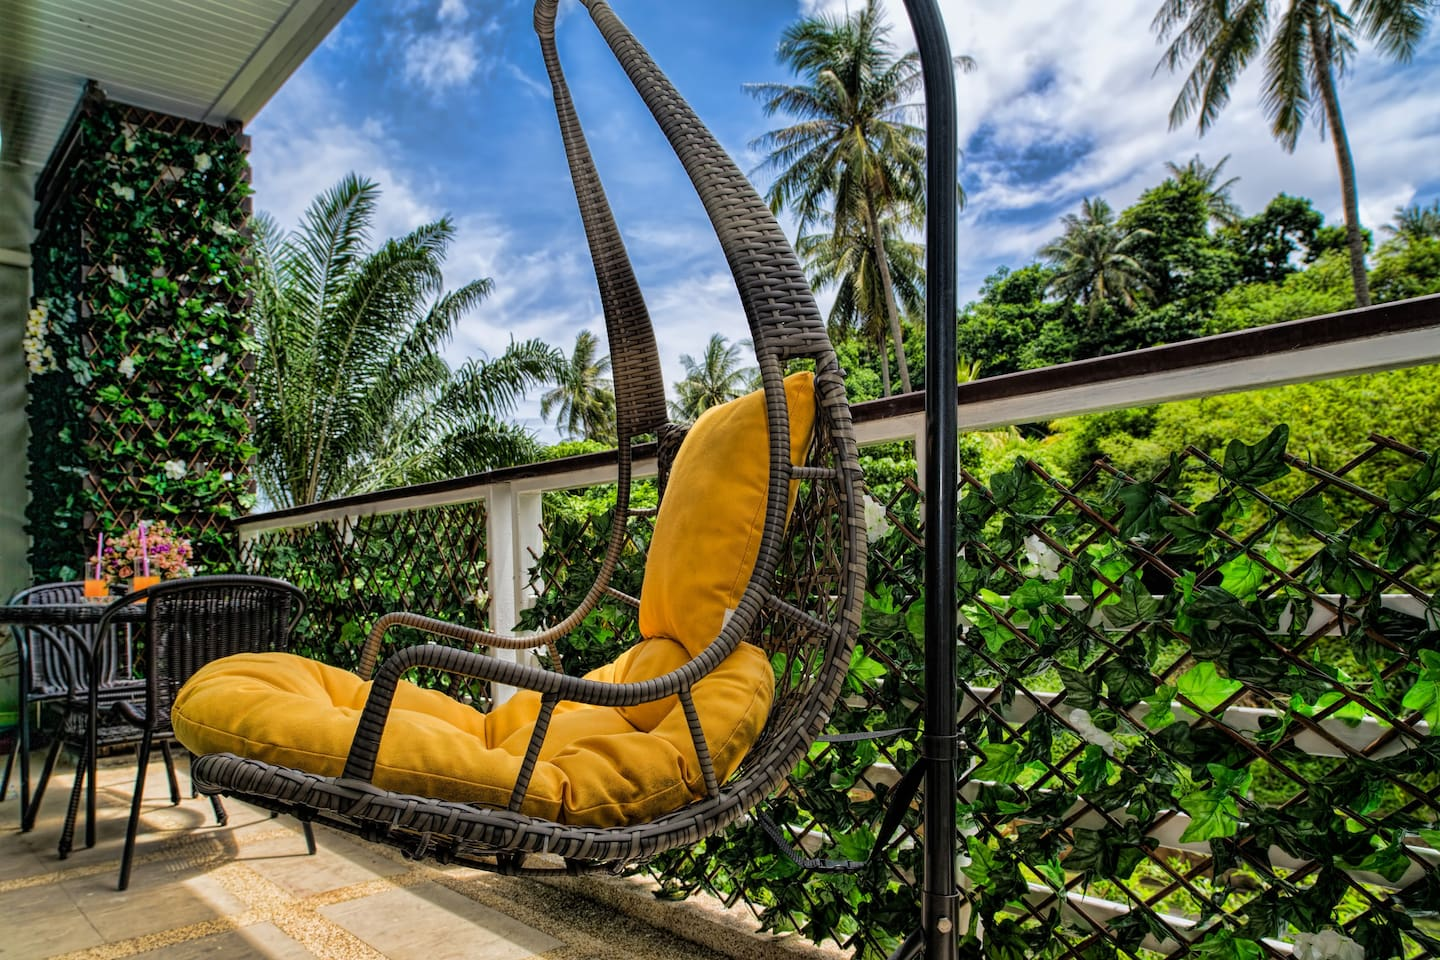 Enjoy amazing surroundings in swing chair from your balcony!!!